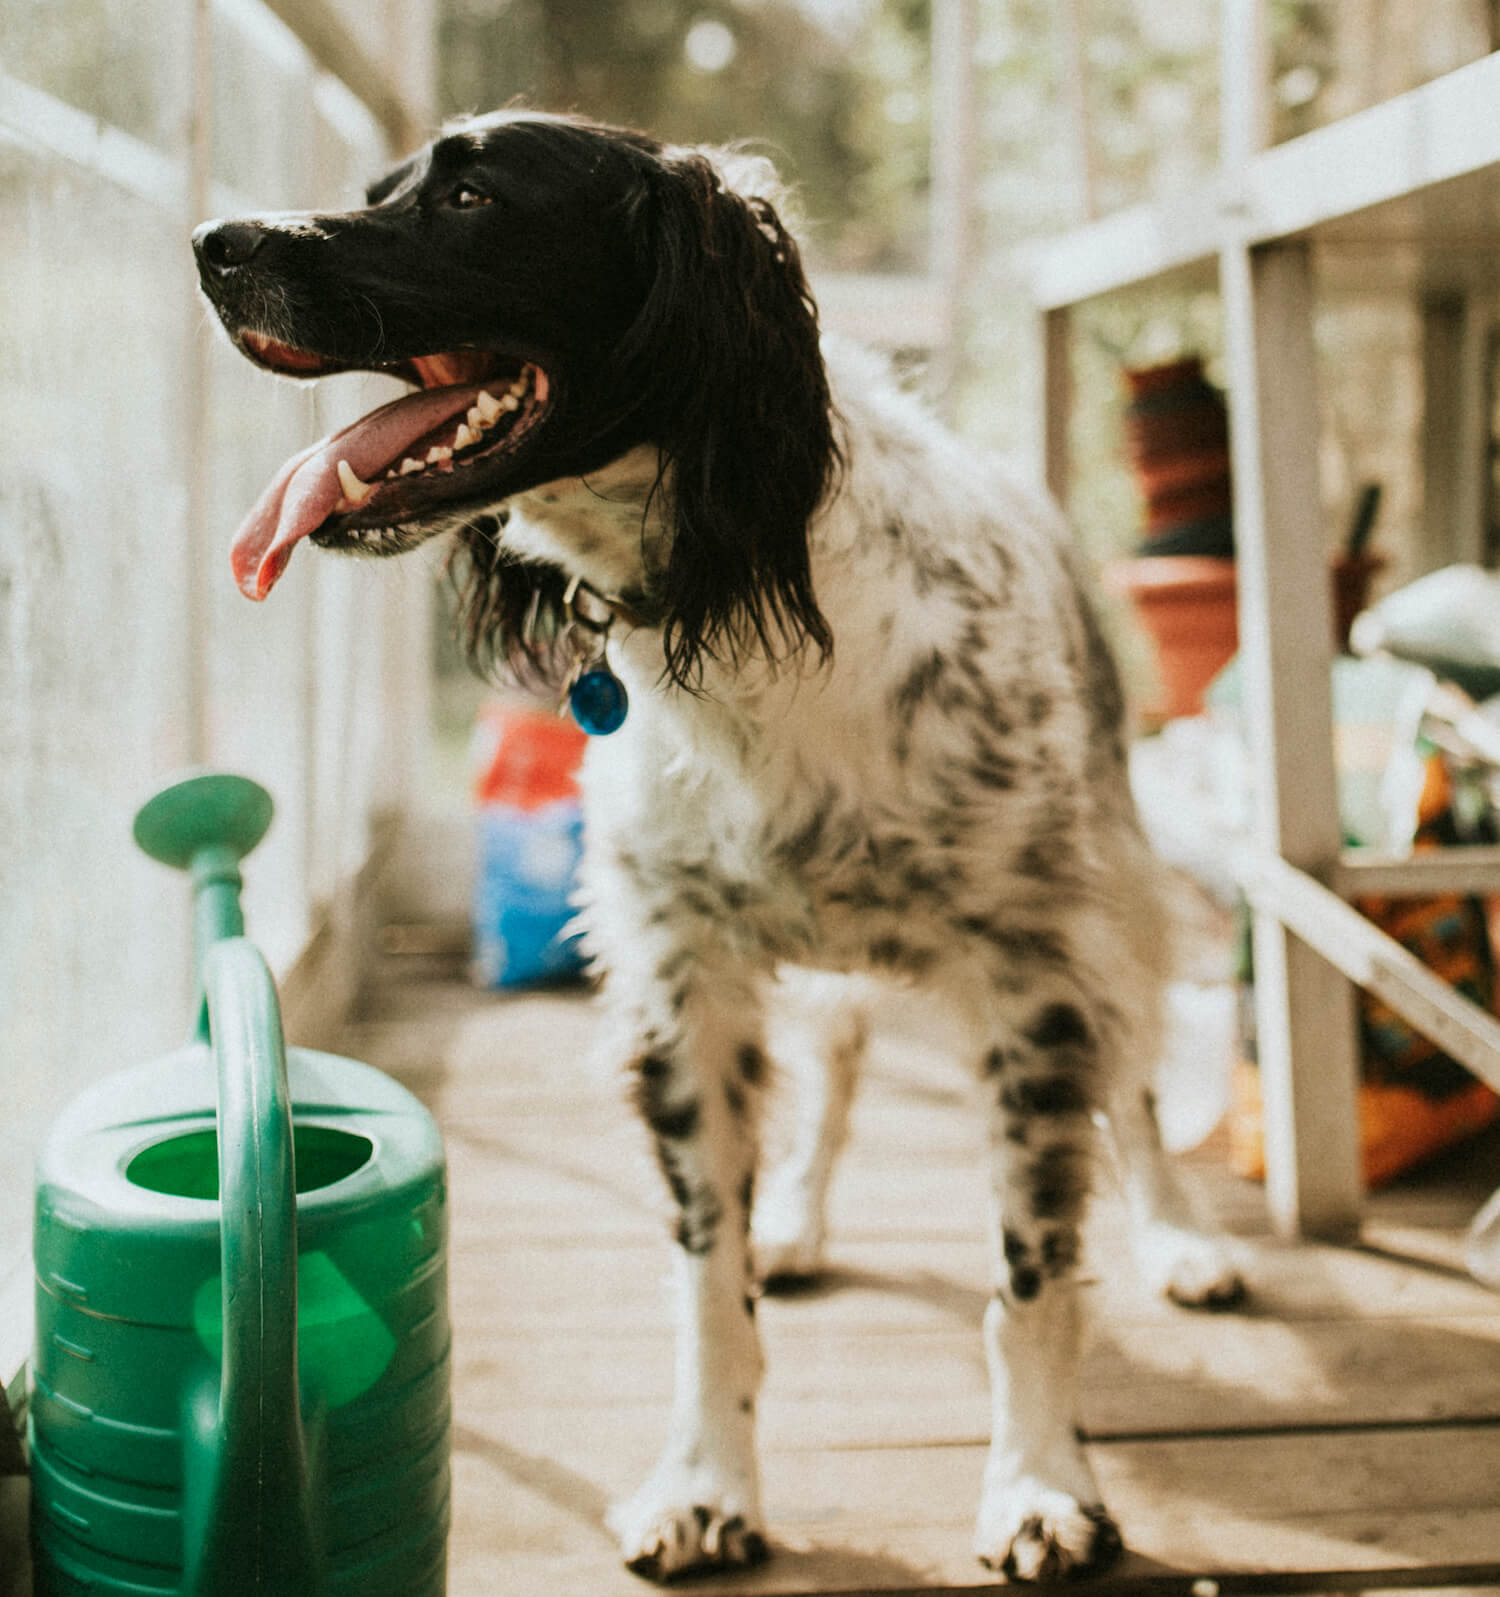 english-setter-dog-in-a-greenhouse-TVTH6VY